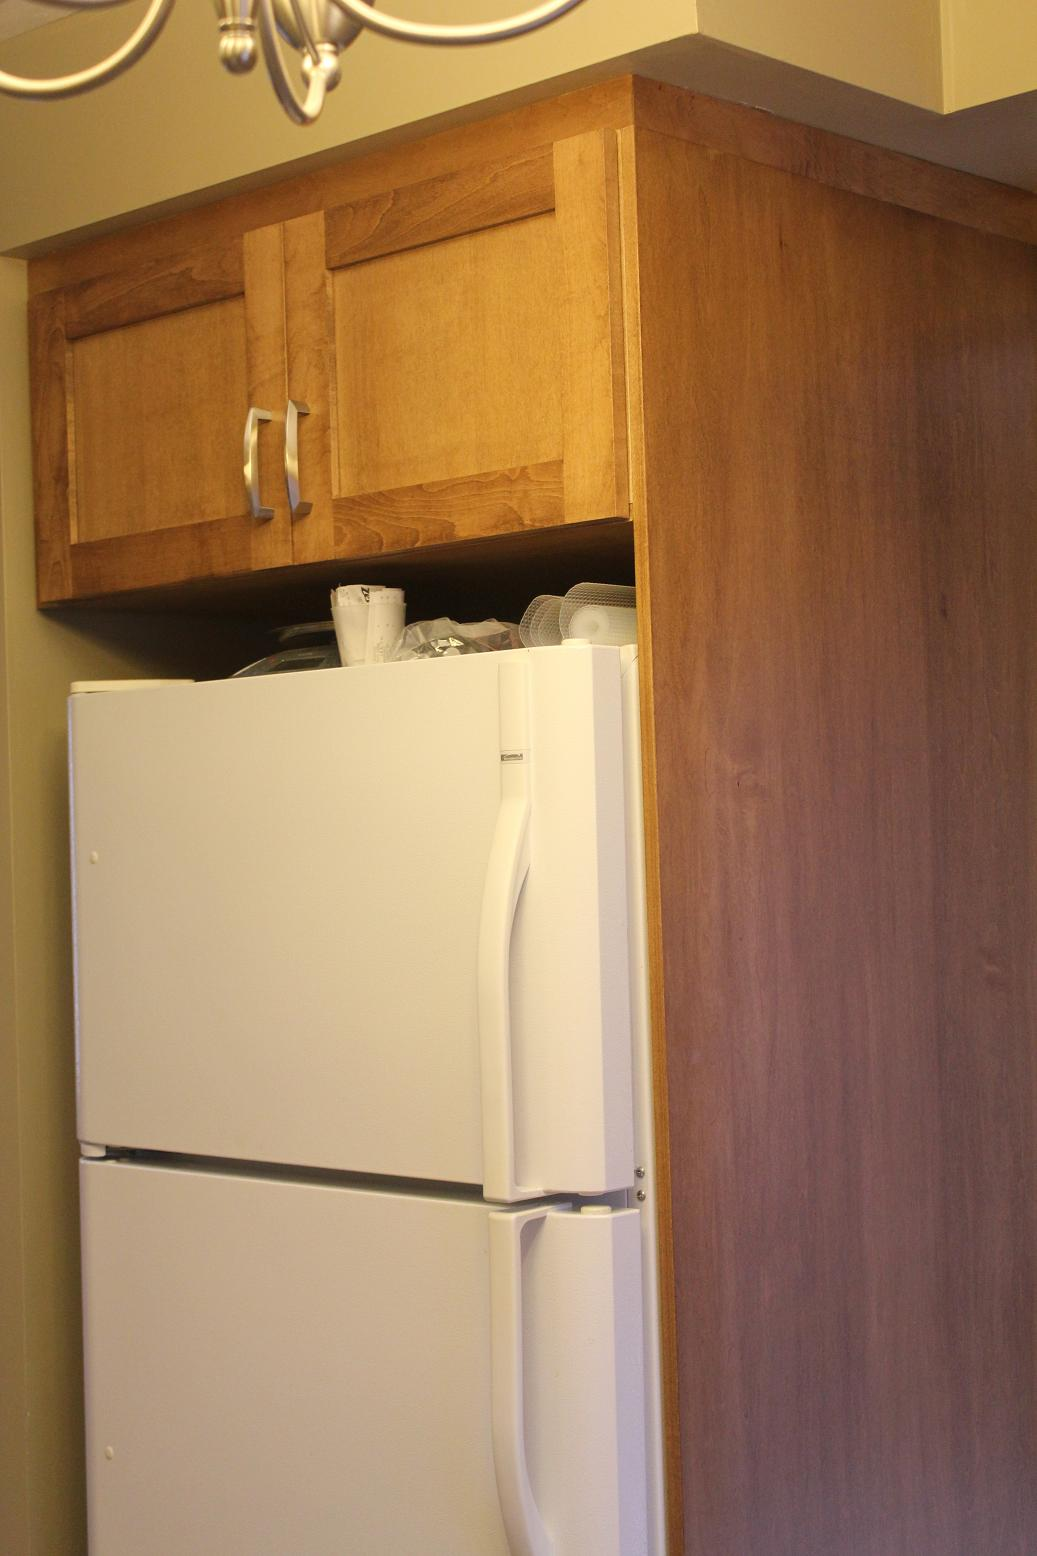 Pictures Of Refaced Kitchen Cabinets Ea Kitchen Shaker | Over 25 Years Of Custom Cabinets